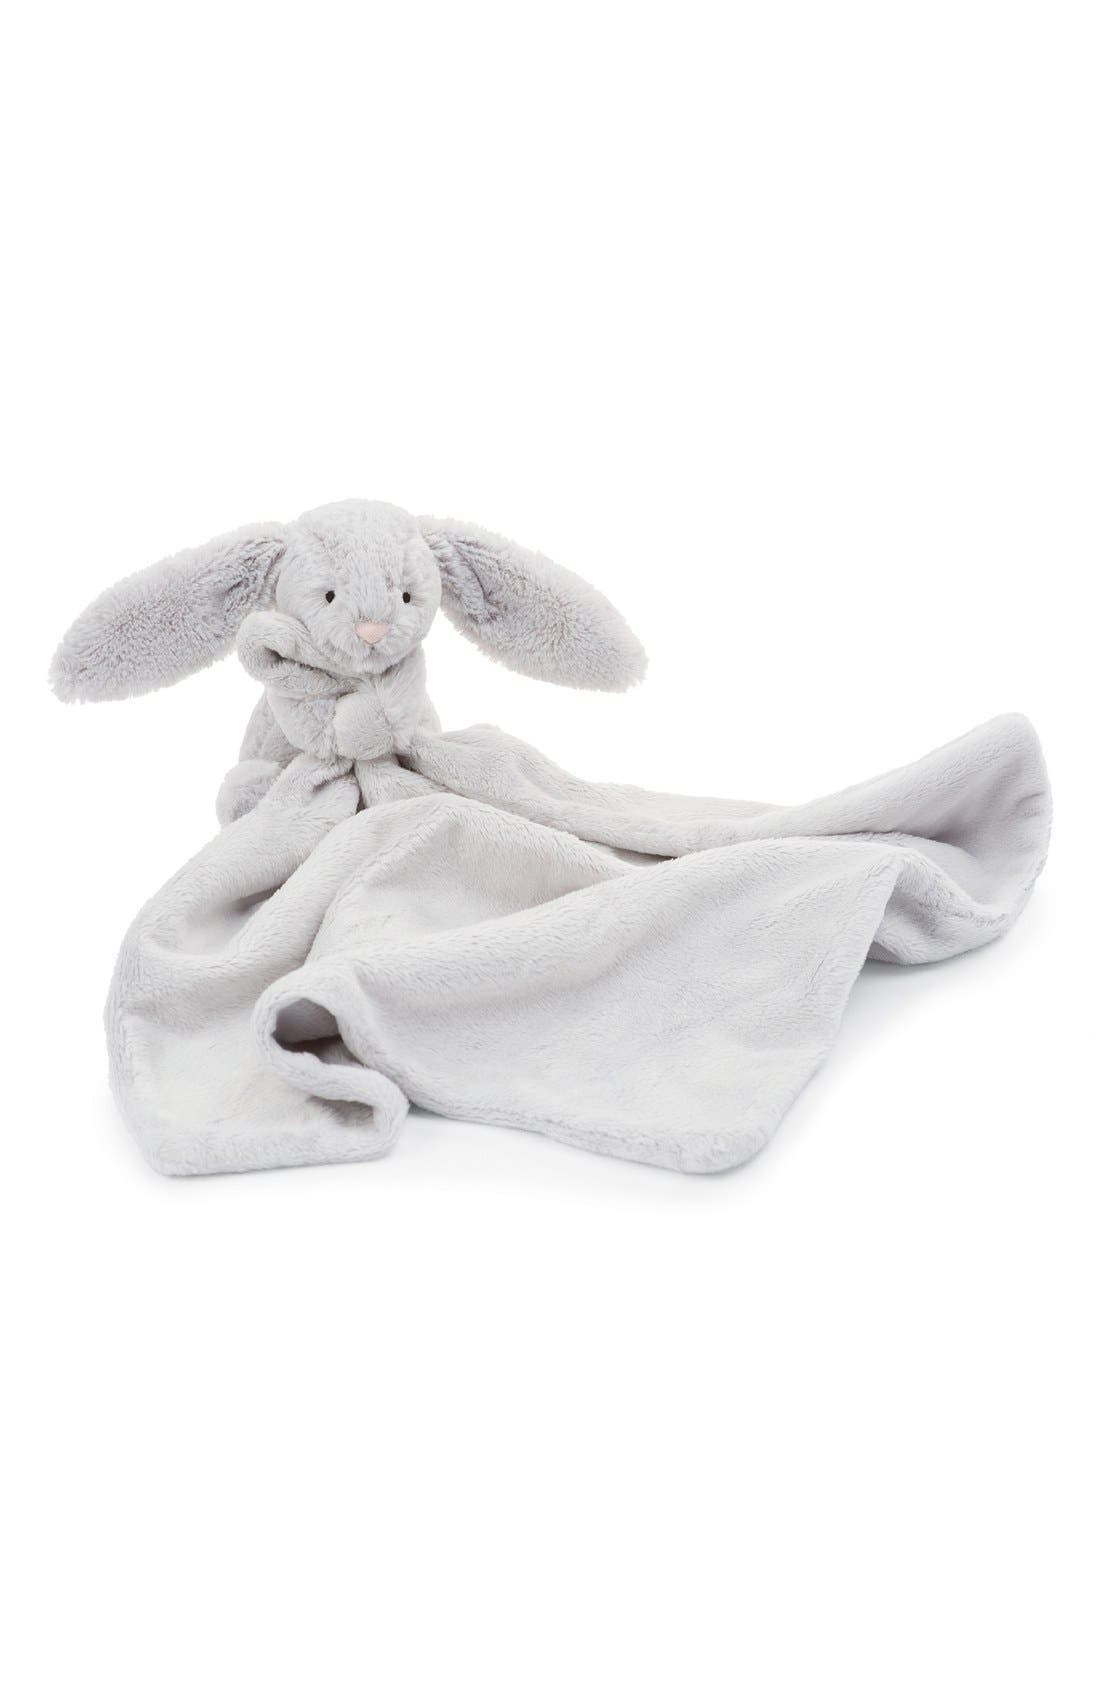 Main Image - Jellycat 'Grey Bunny Soother' Blanket